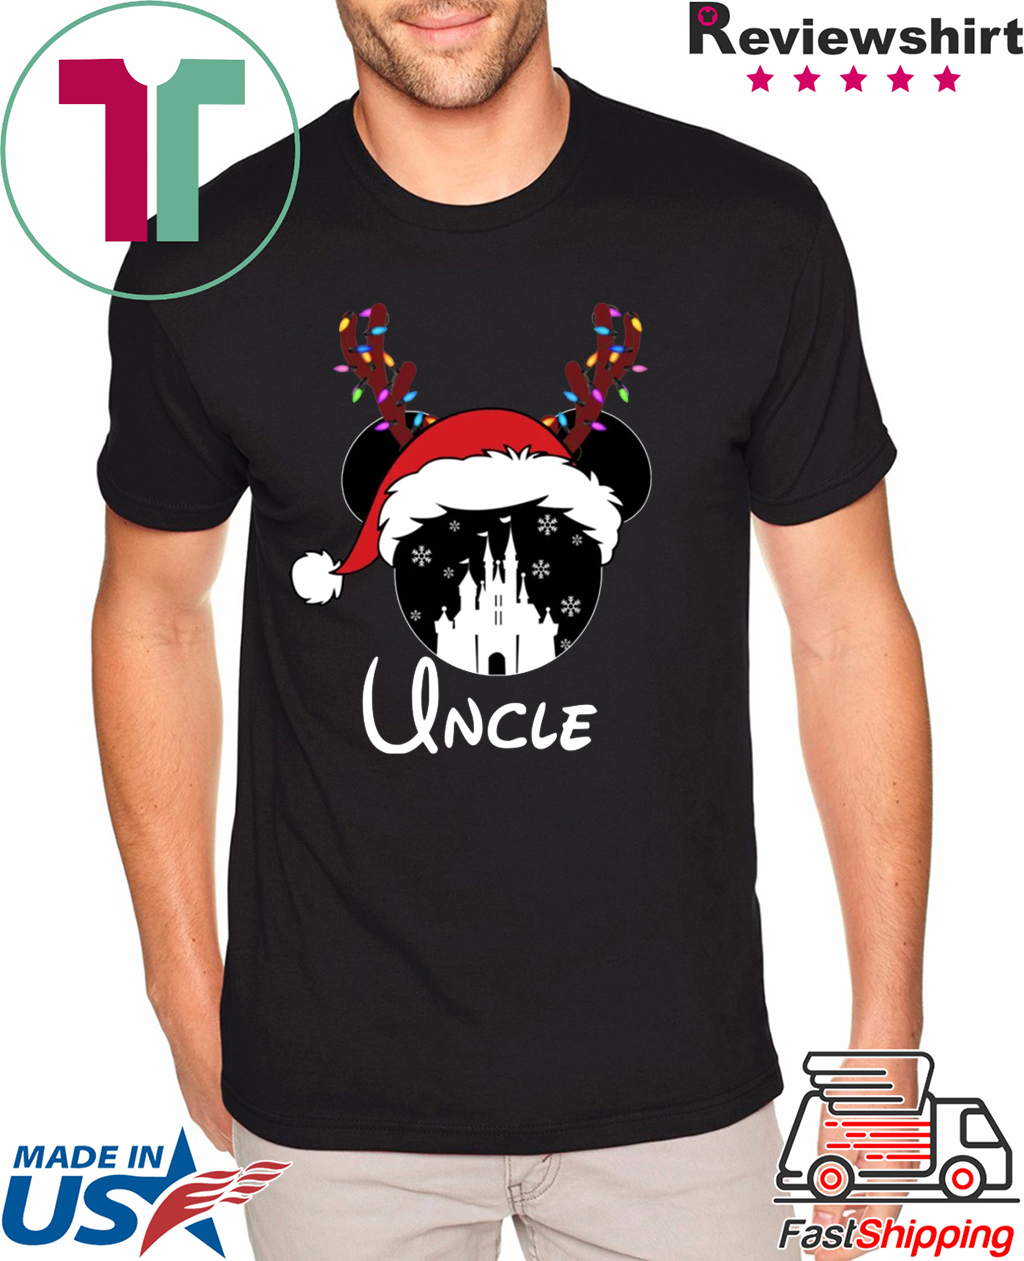 Disney Christmas Shirts.Reindeer Mickey Uncle Disney Castle Family Christmas Shirt Reviewshirts Office